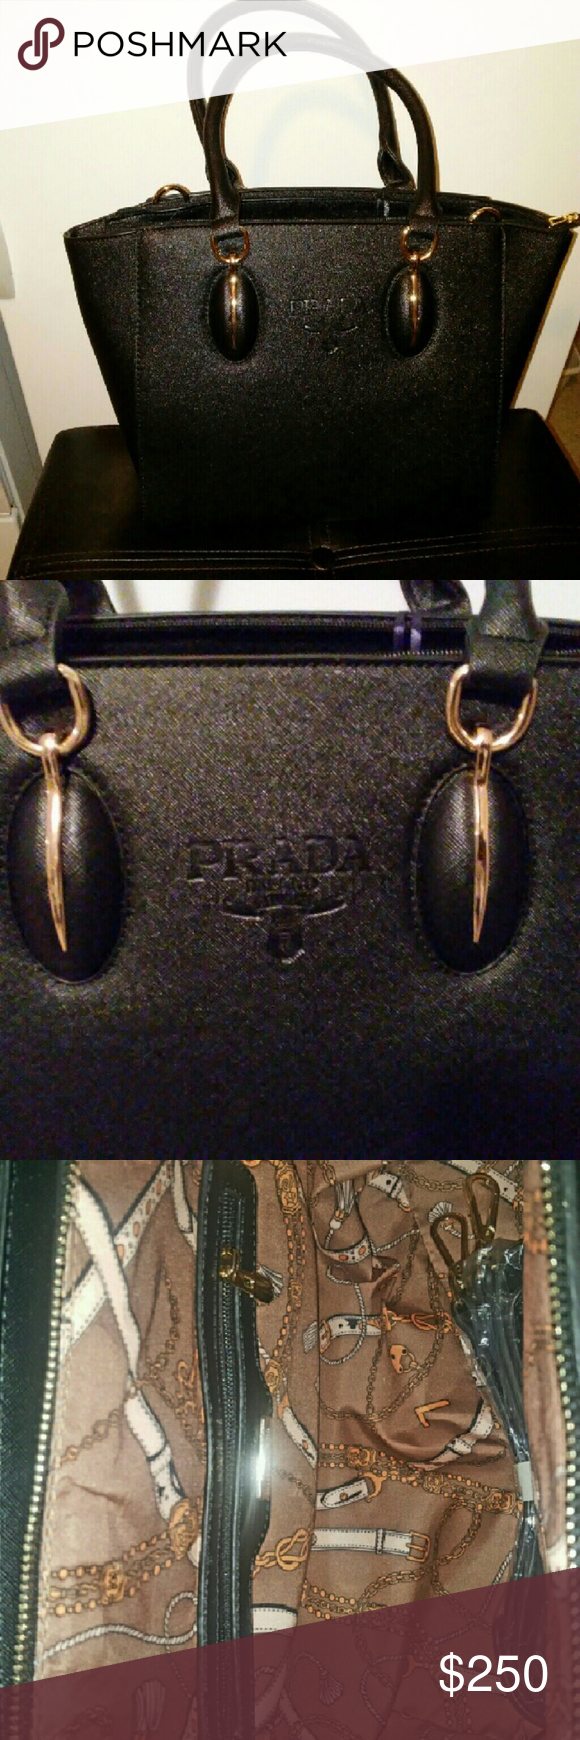 Prada All leather comes with shoulder strap if u don't want to carry it prada Bags Shoulder Bags